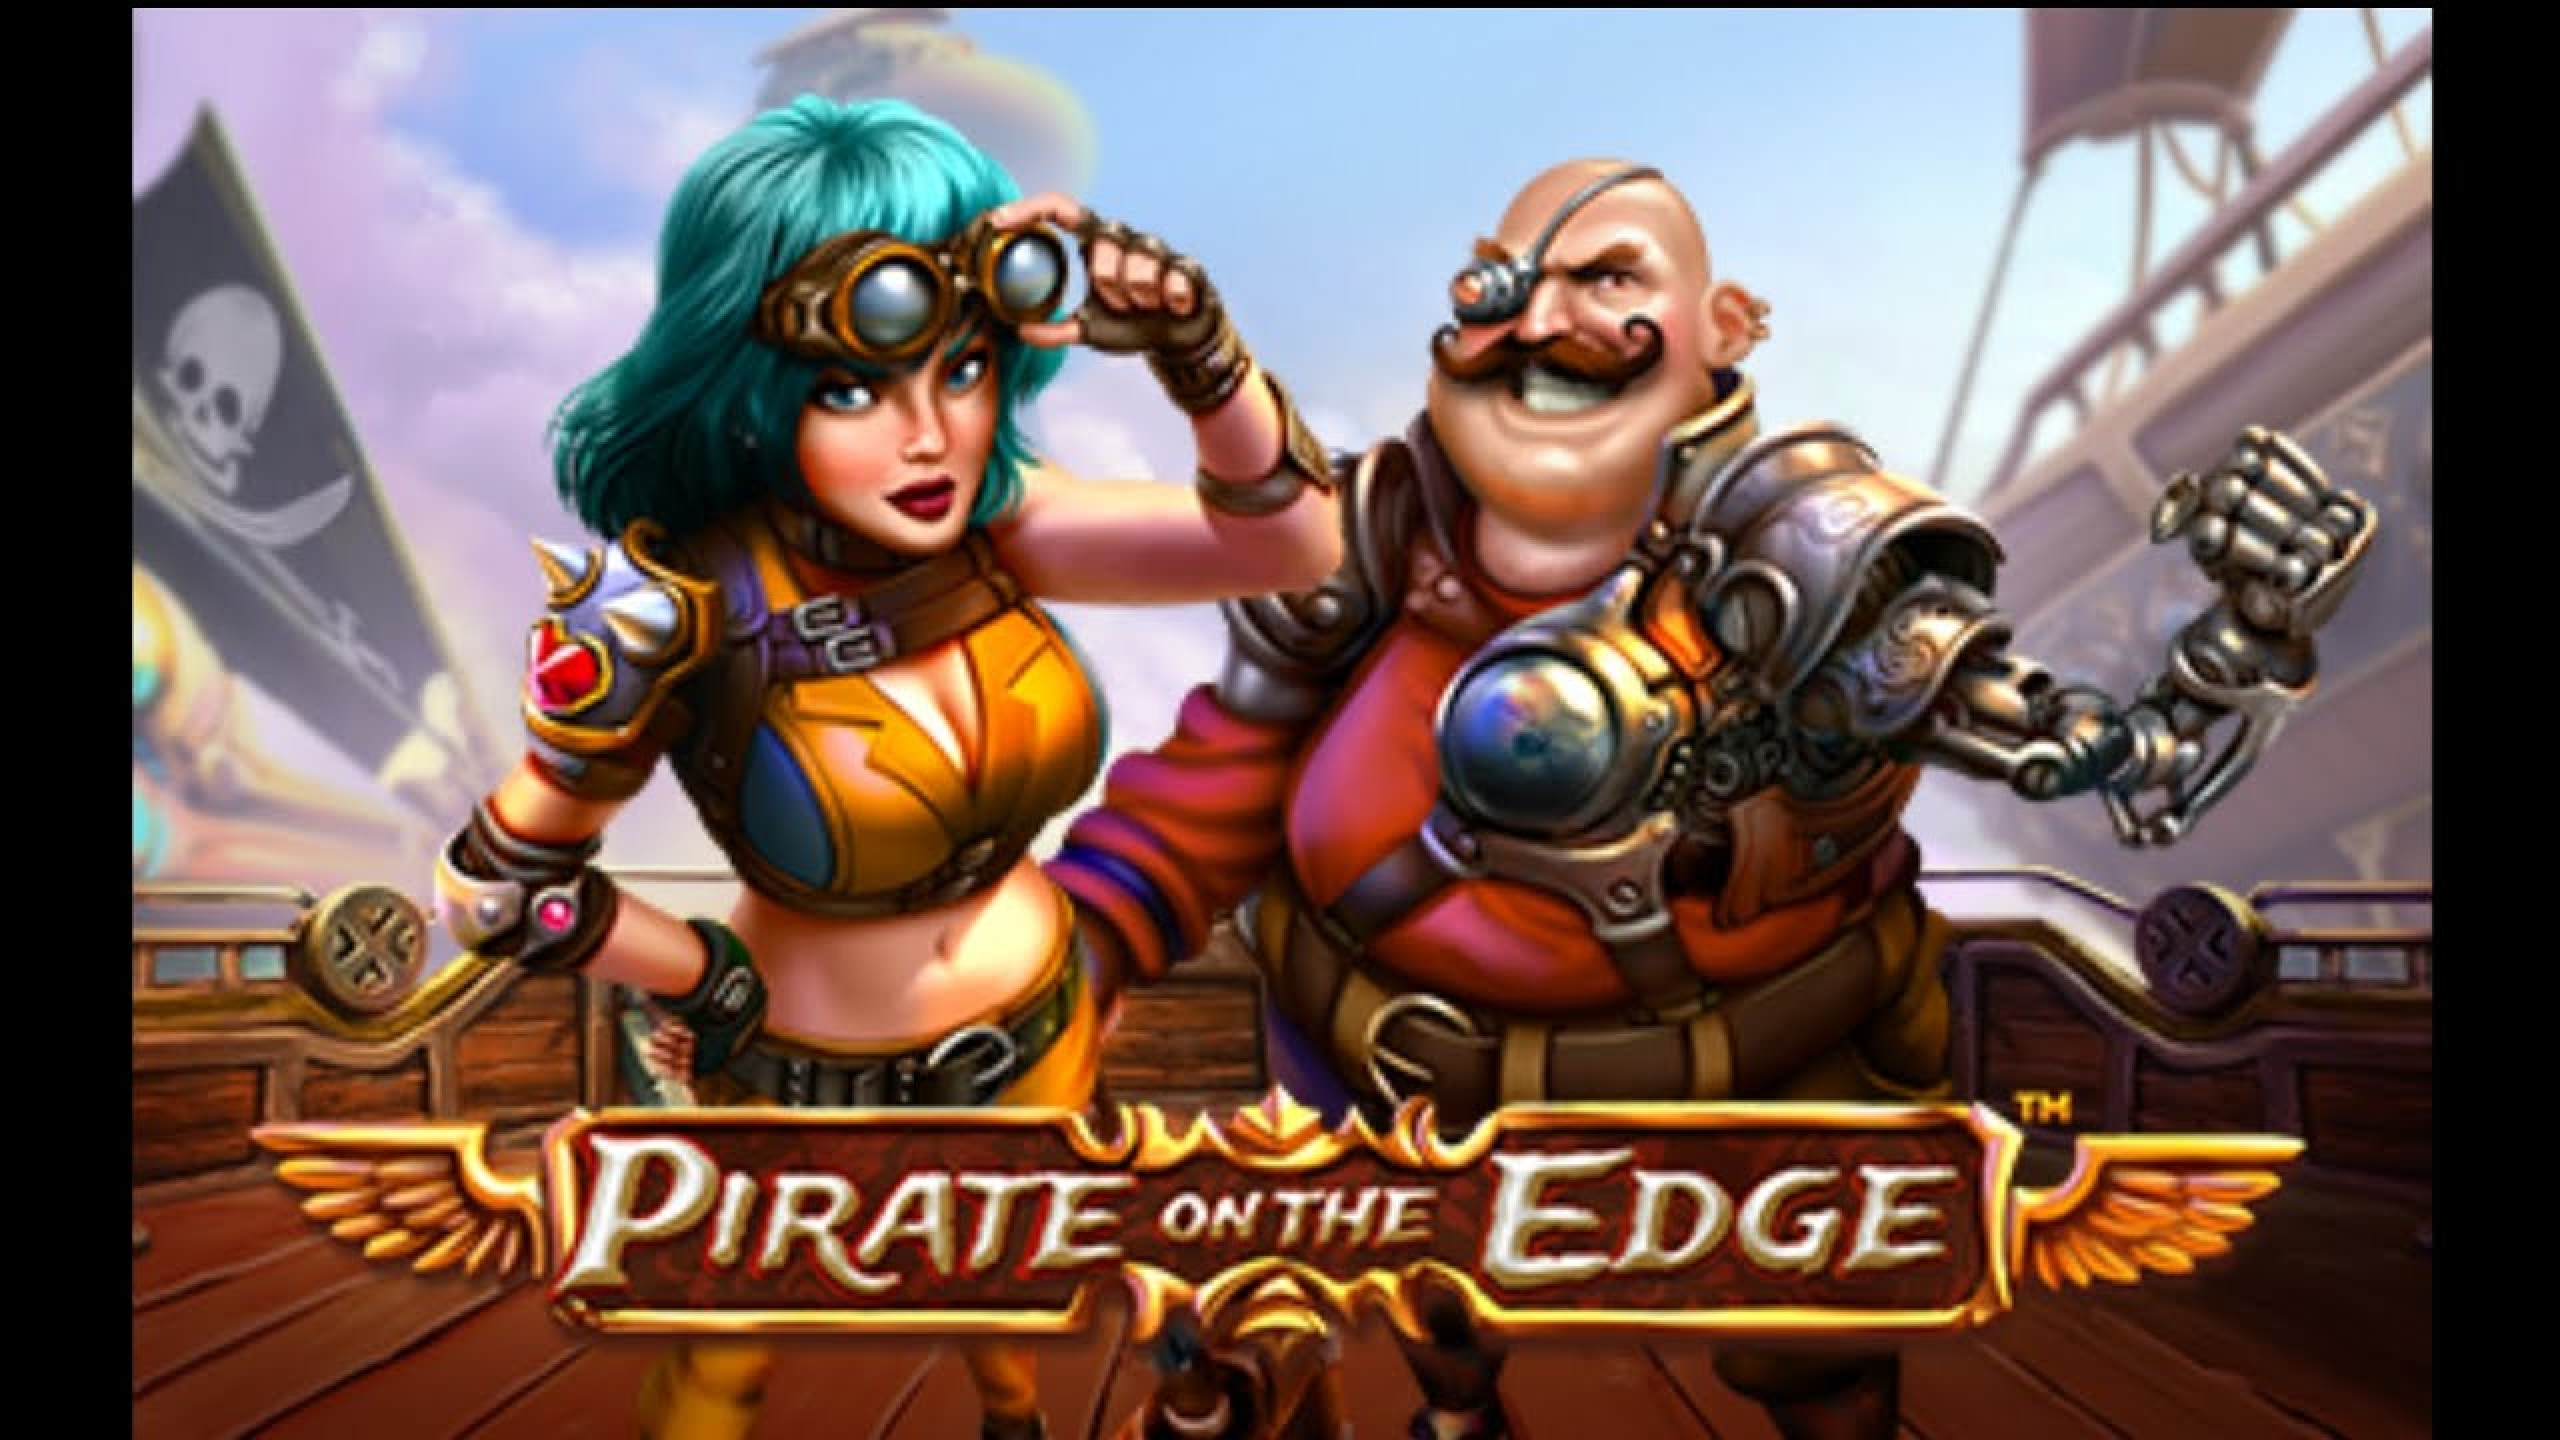 Win Money in Pirate on the Edge Free Slot Game by Skywind